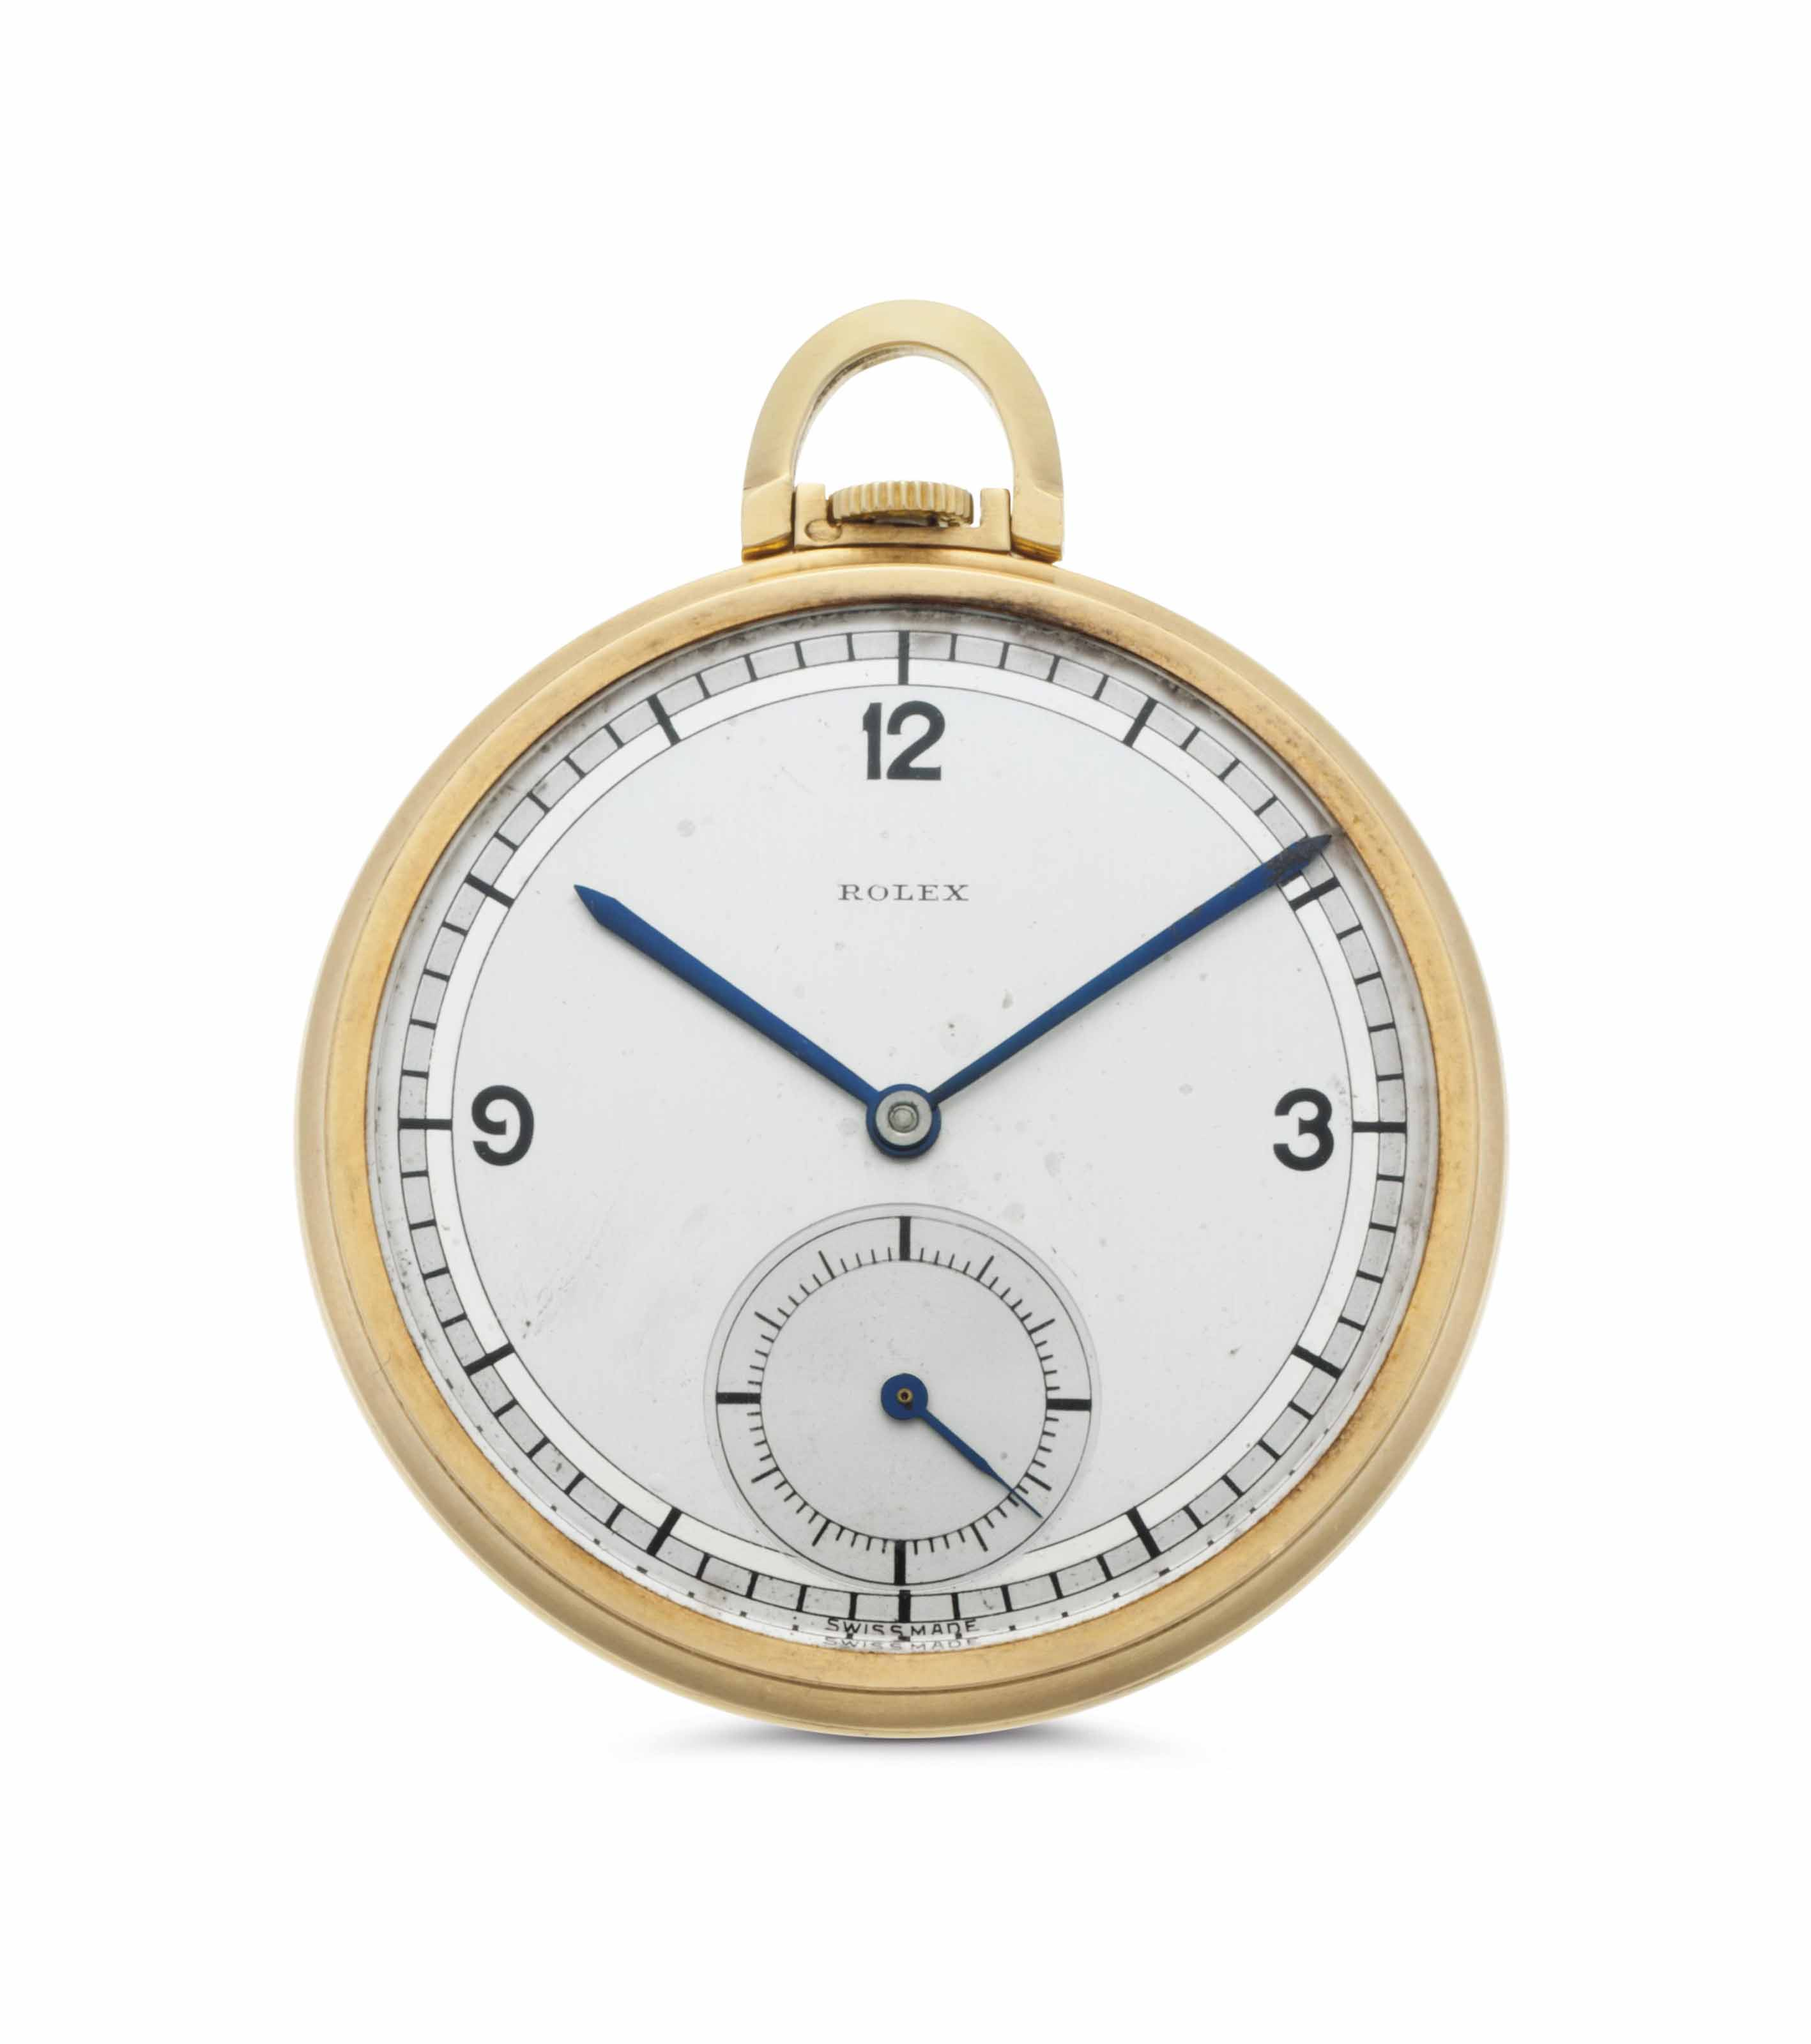 Rolex. An 18k Gold Openface Keyless Lever Pocket Watch with Two-Tone Dial